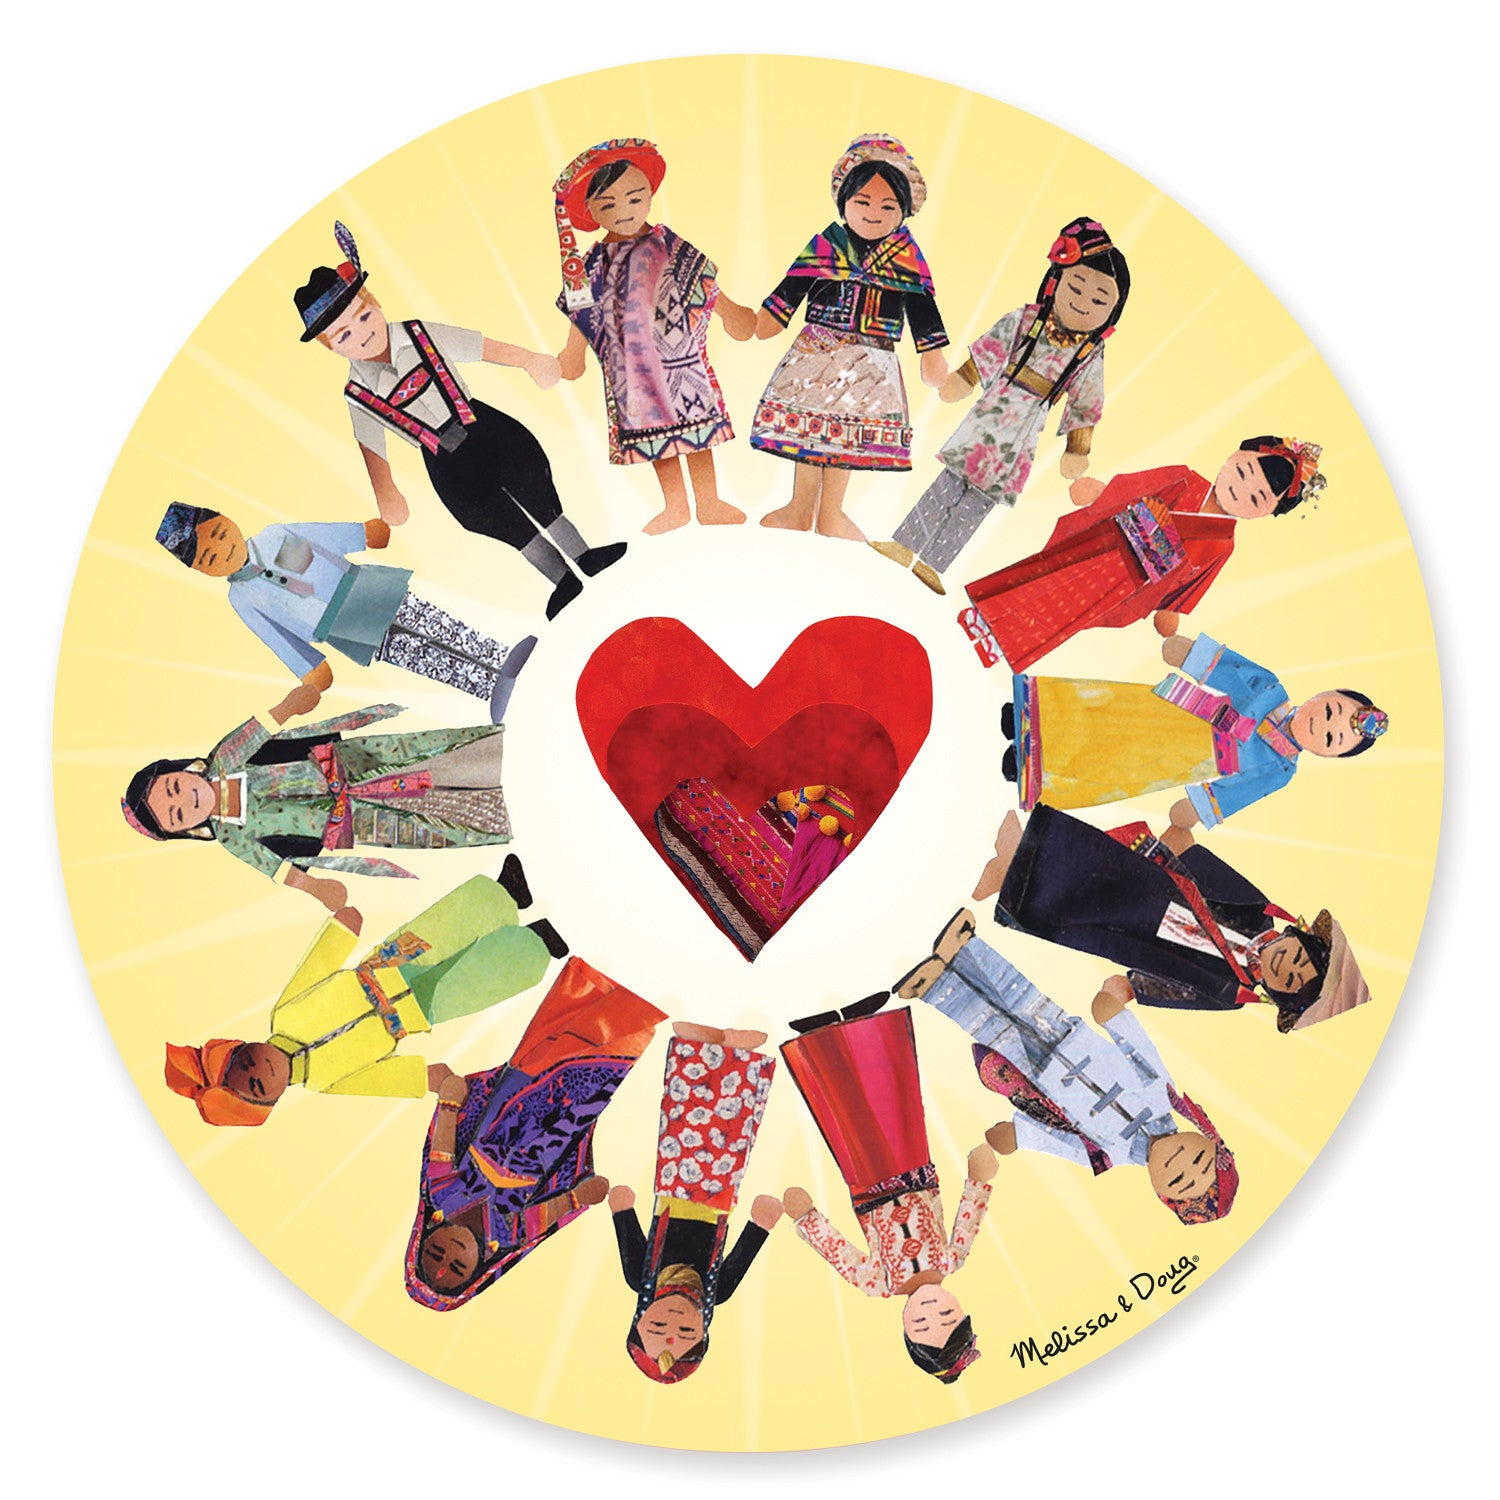 Melissa & Doug 0100 pc Circle of Friends Cardboard Jigsaw 8941